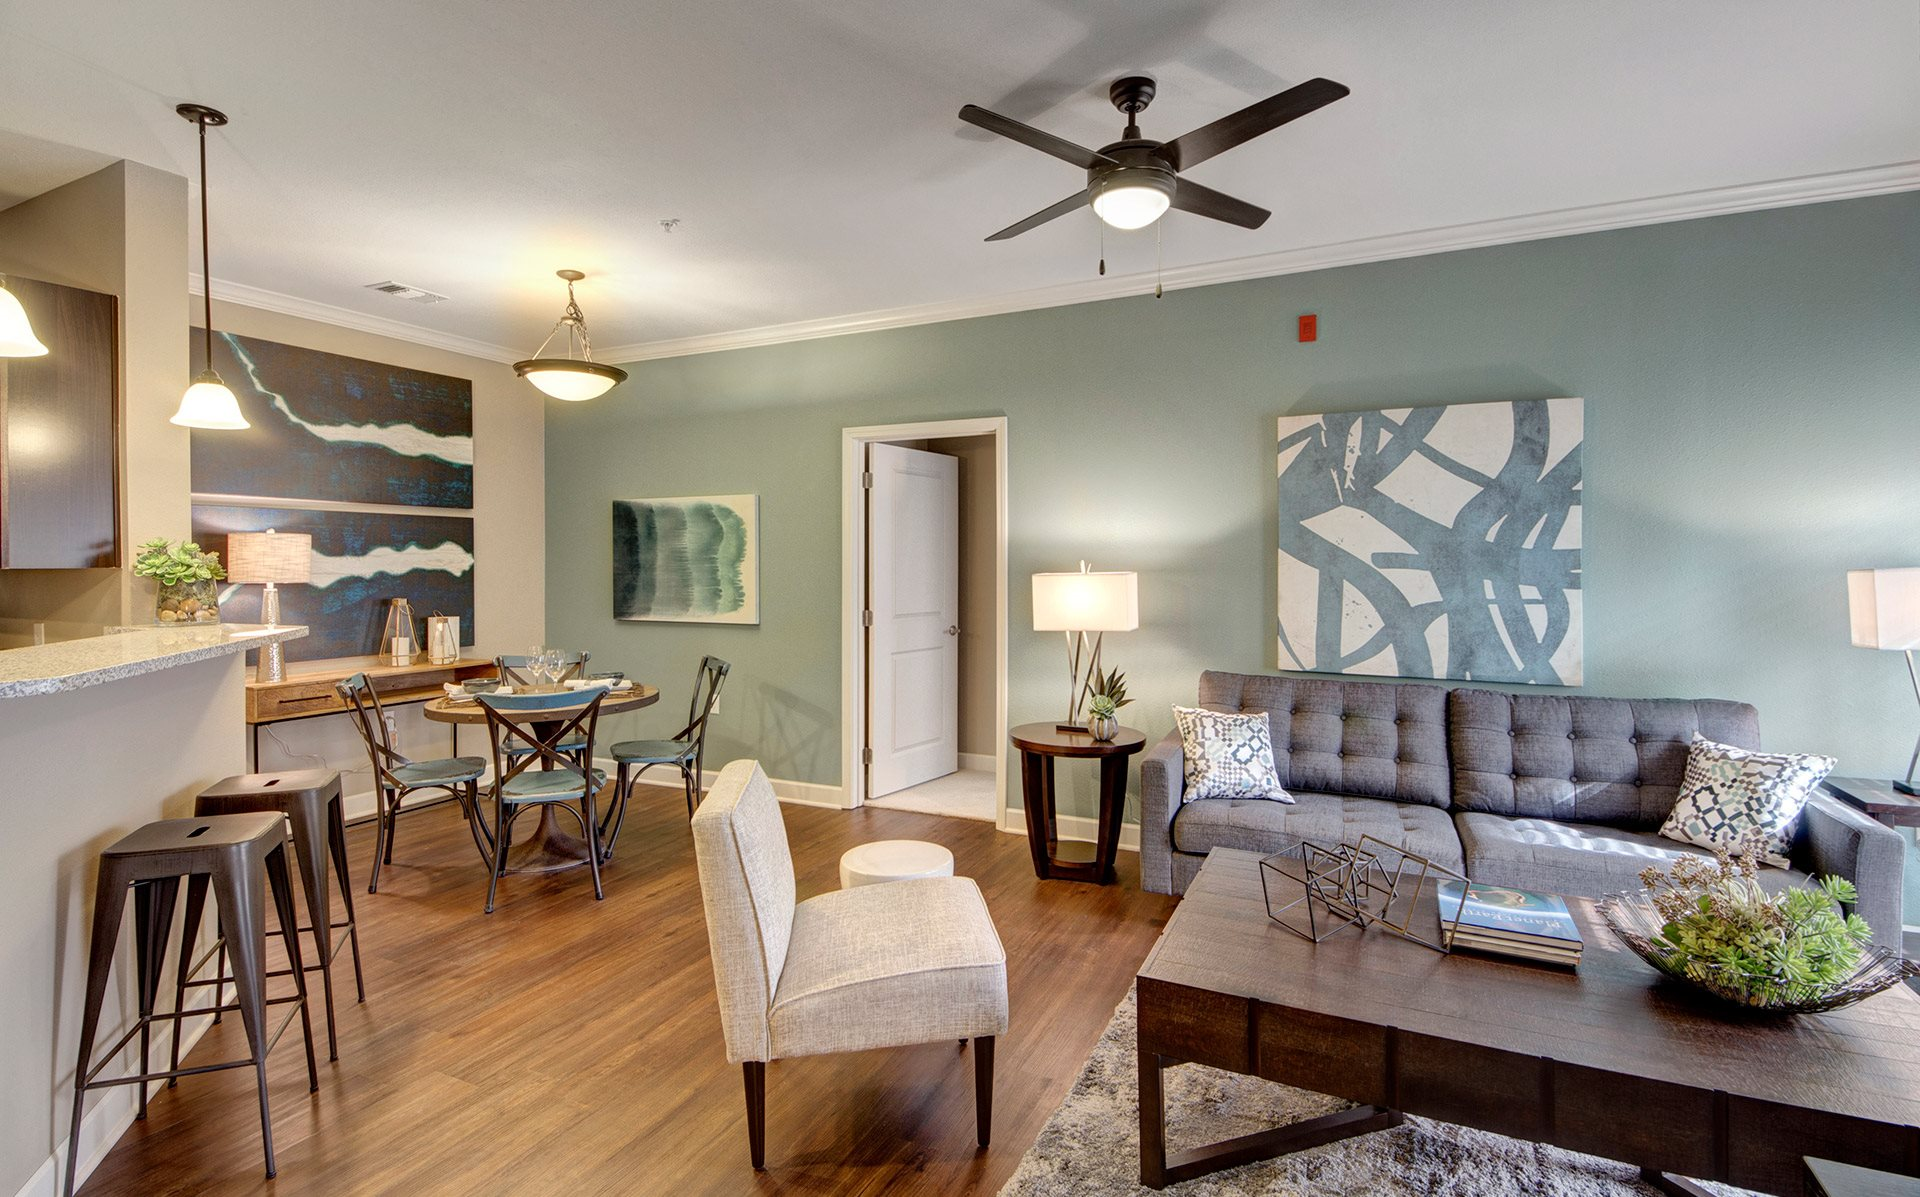 Creekside apartments apartments in broken arrow ok - 3 bedroom apartments in broken arrow ok ...